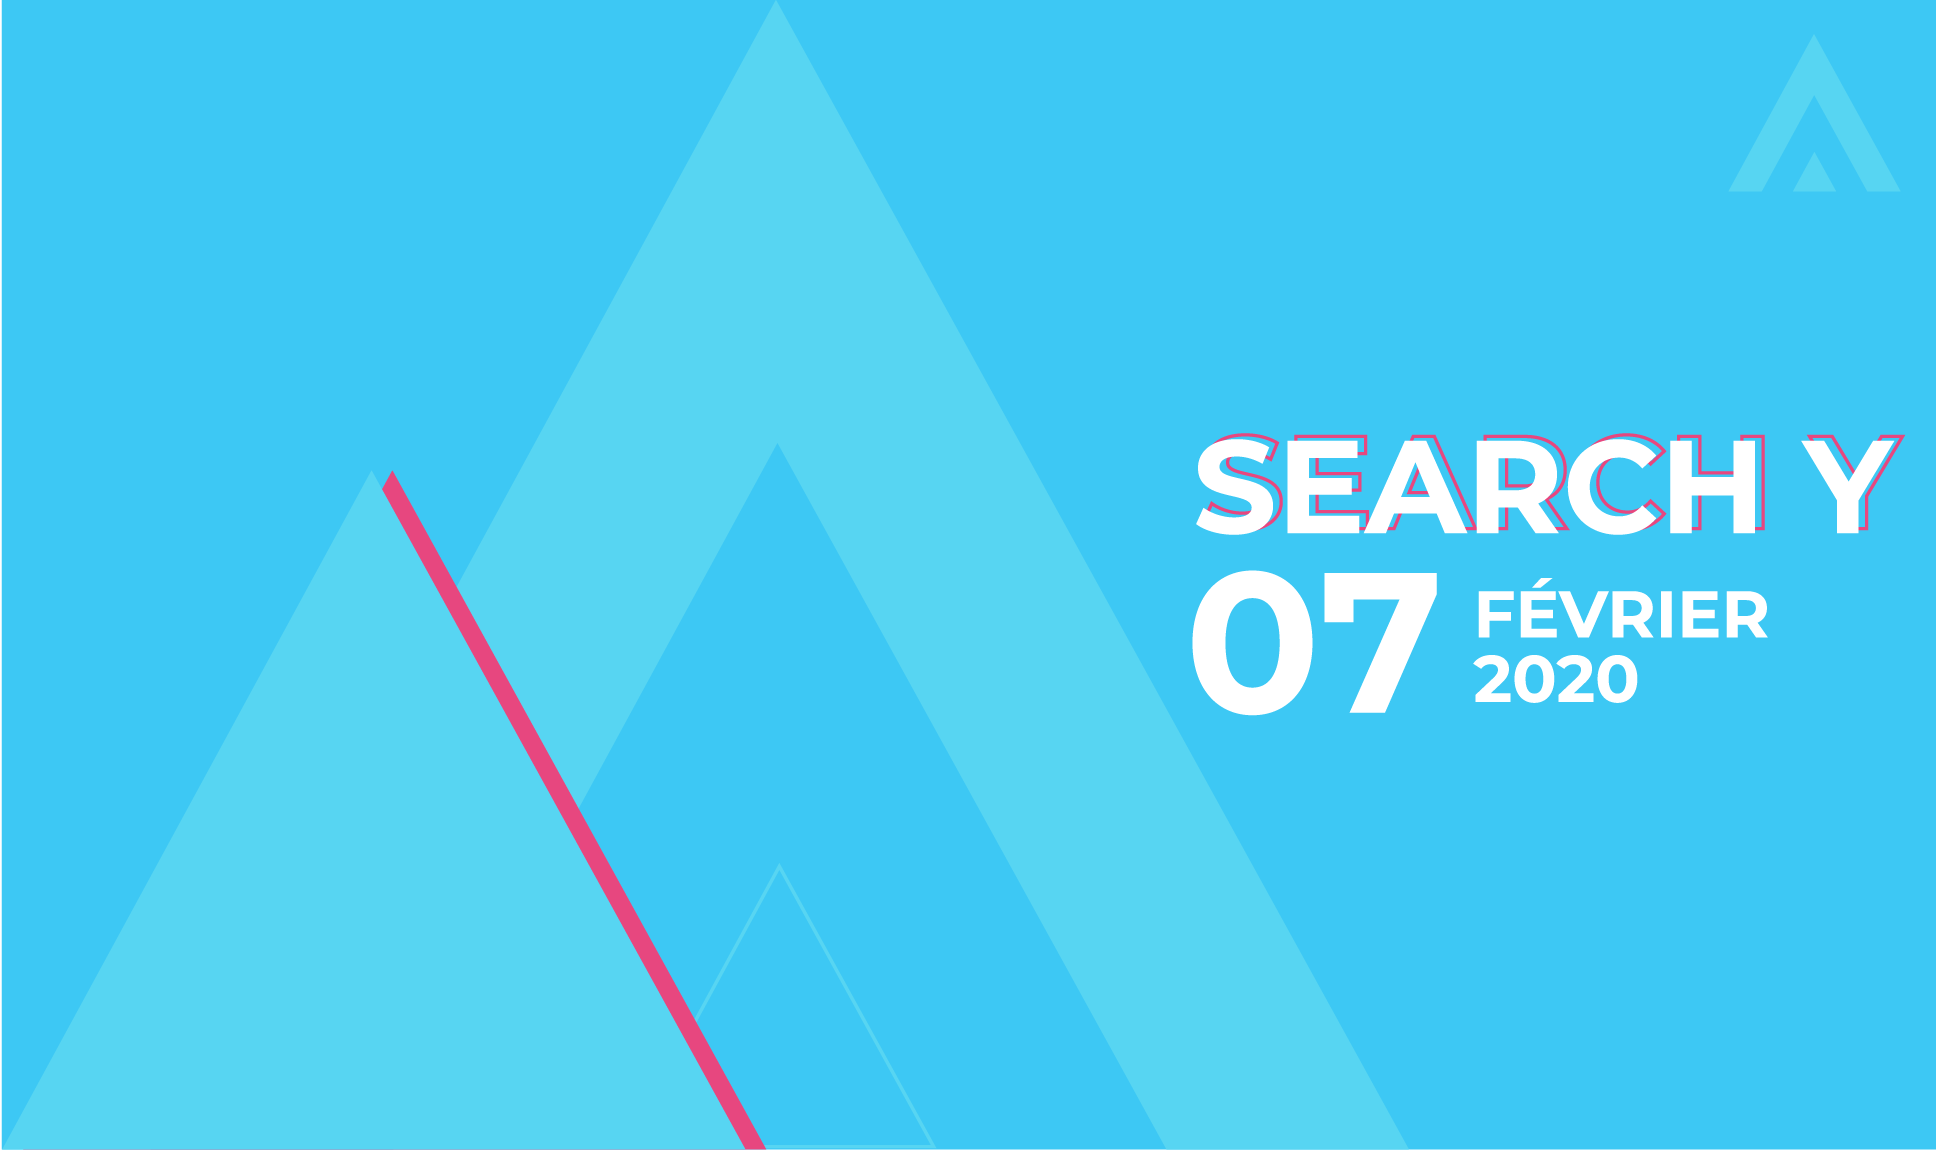 SEO Search Y Paris 2020 : notre conférence Content Marketing /SEO